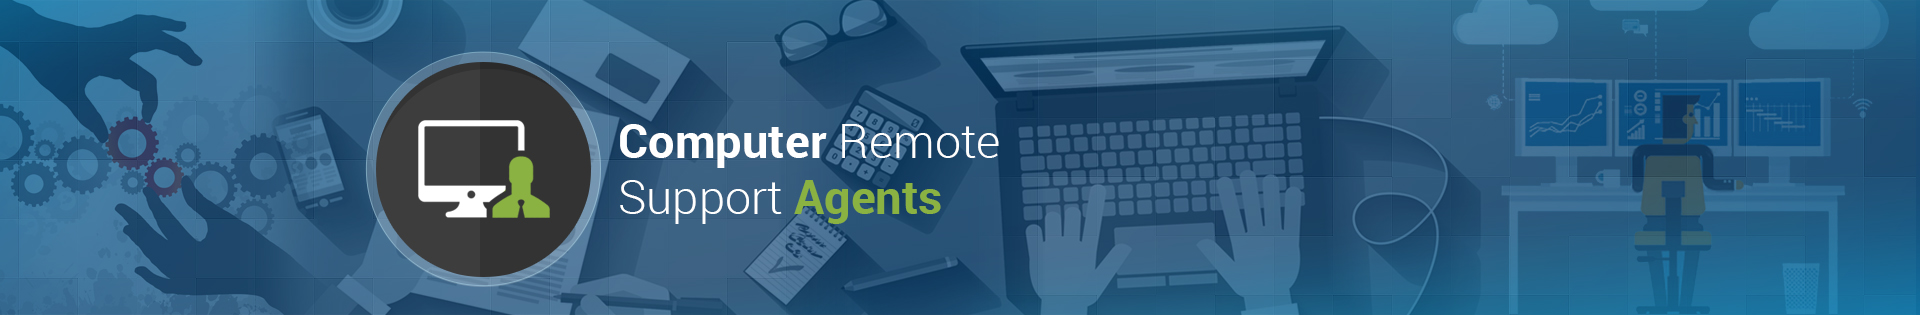 Computer Remote Support Agents